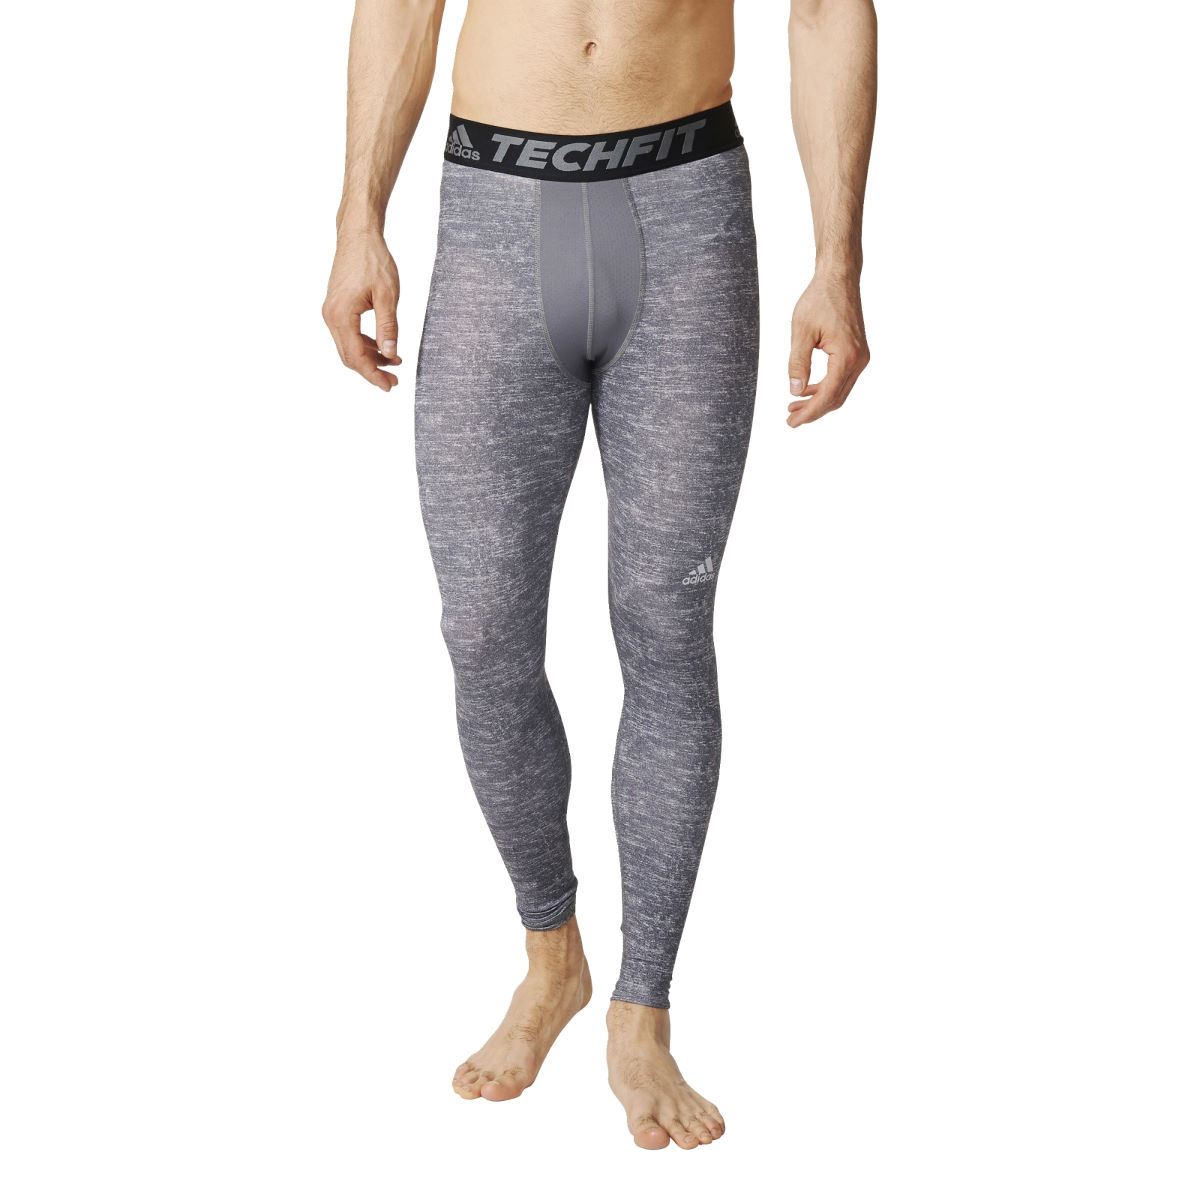 Adidas Techfit Adistar Tight (AW16)   Compression Base Layers